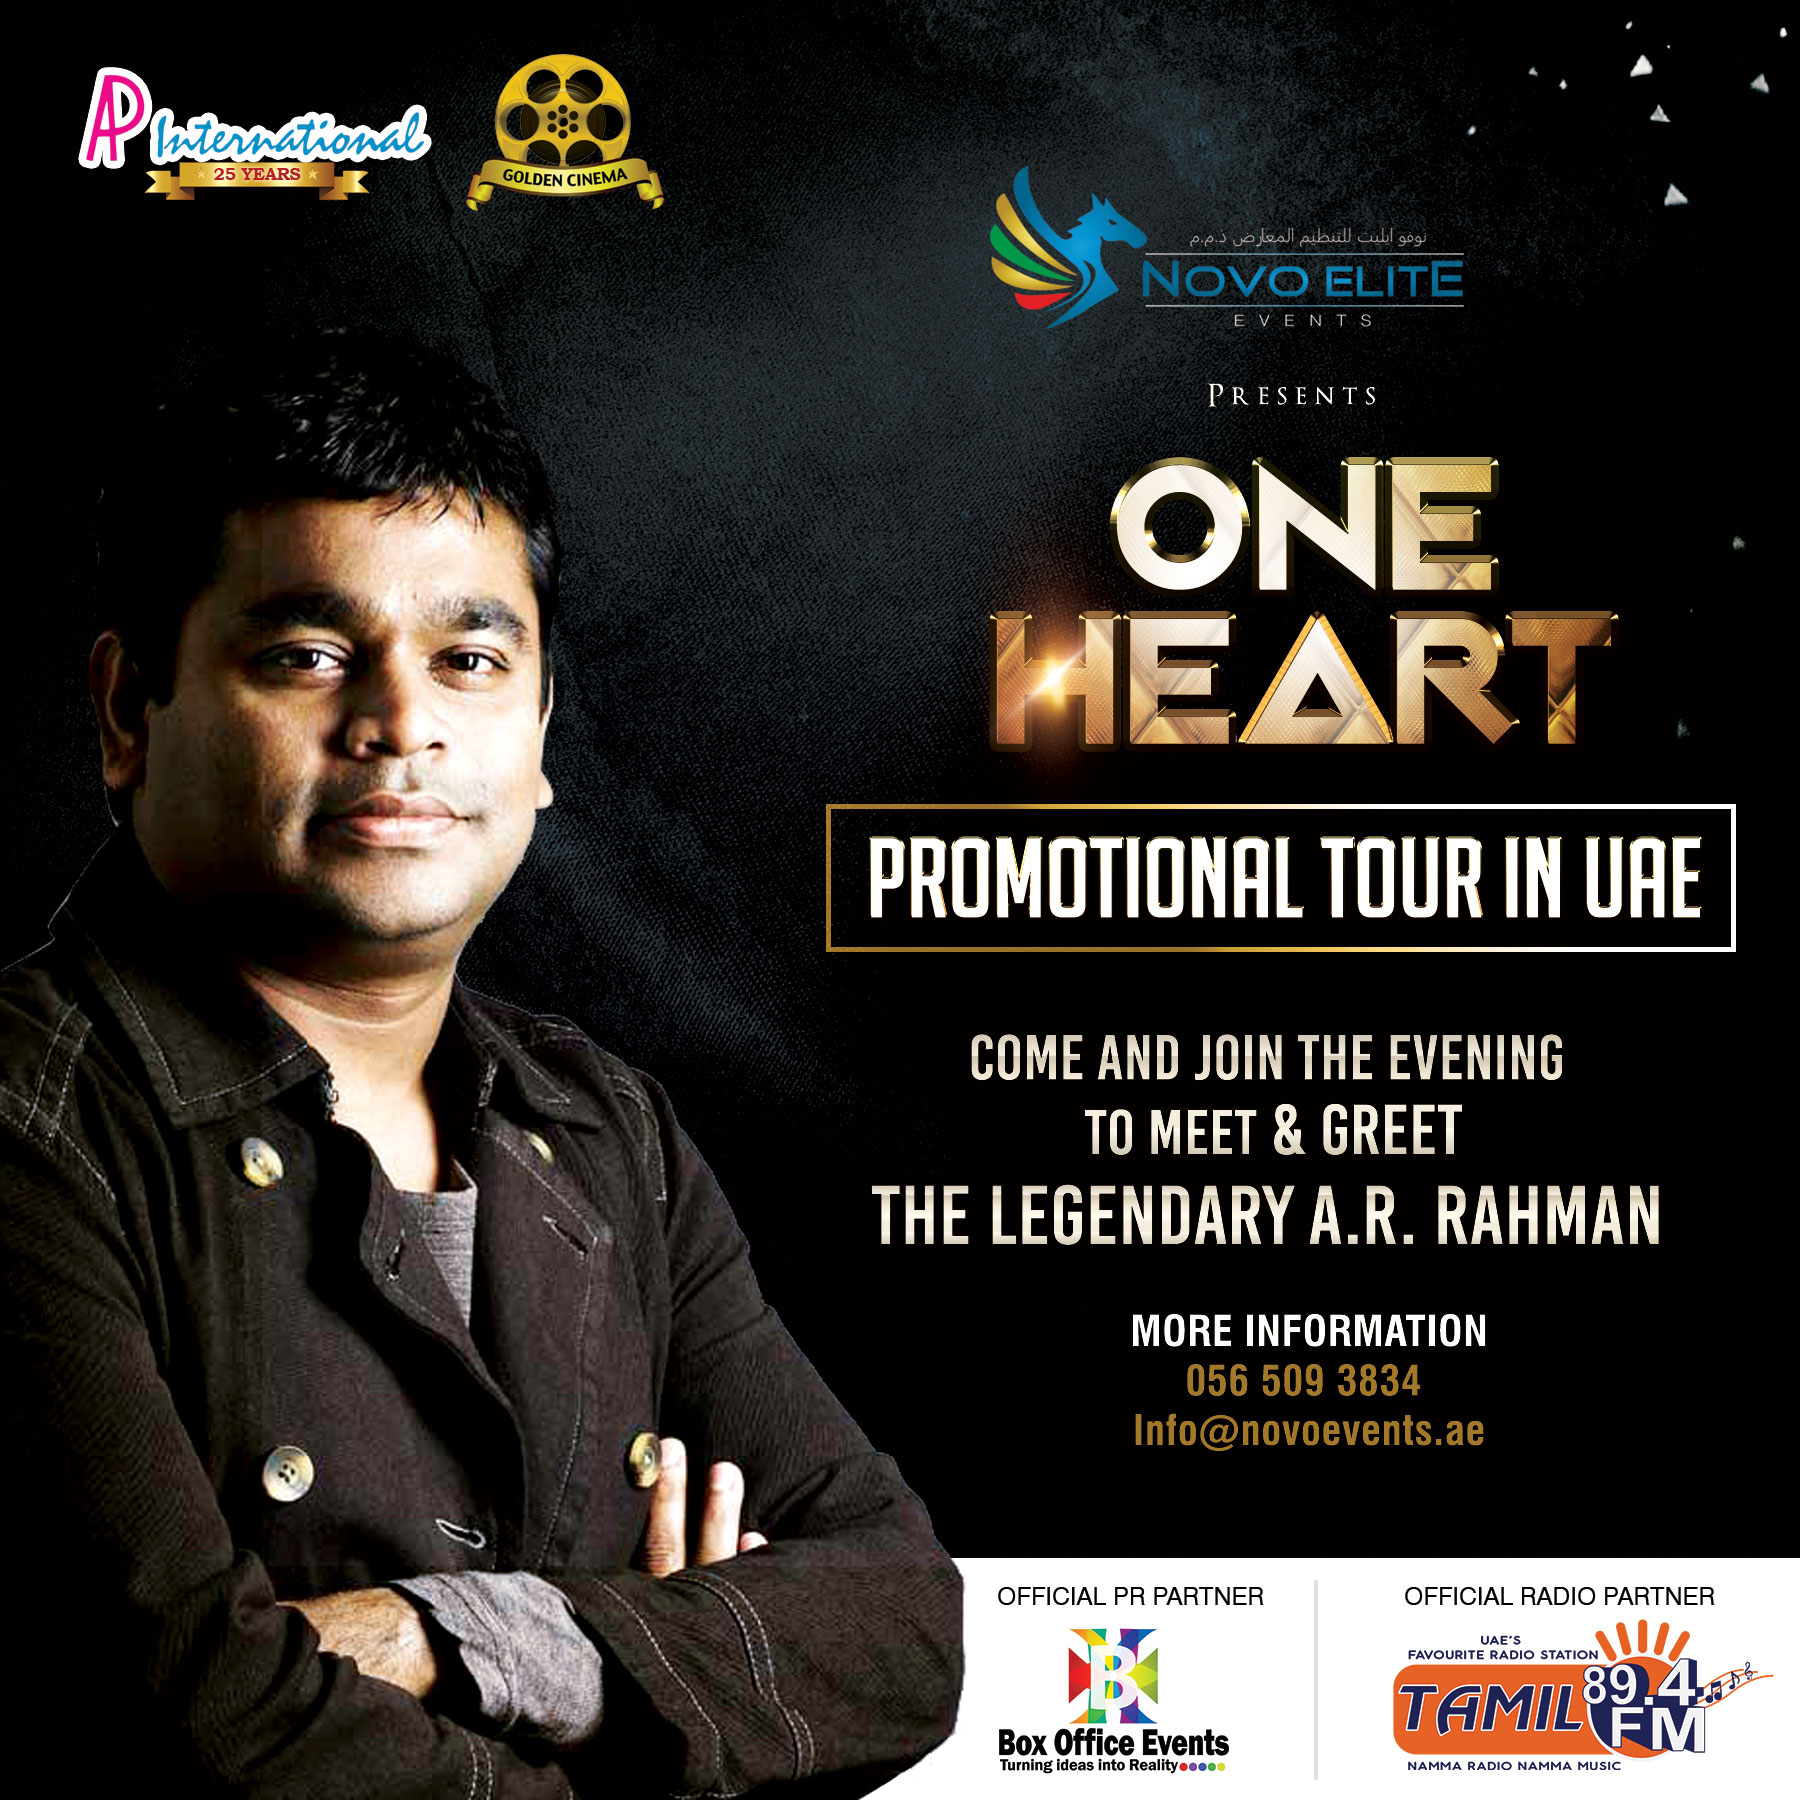 ONE HEART - A Musical Journey by A.R. Rahman is all set to conquer hearts in UAE